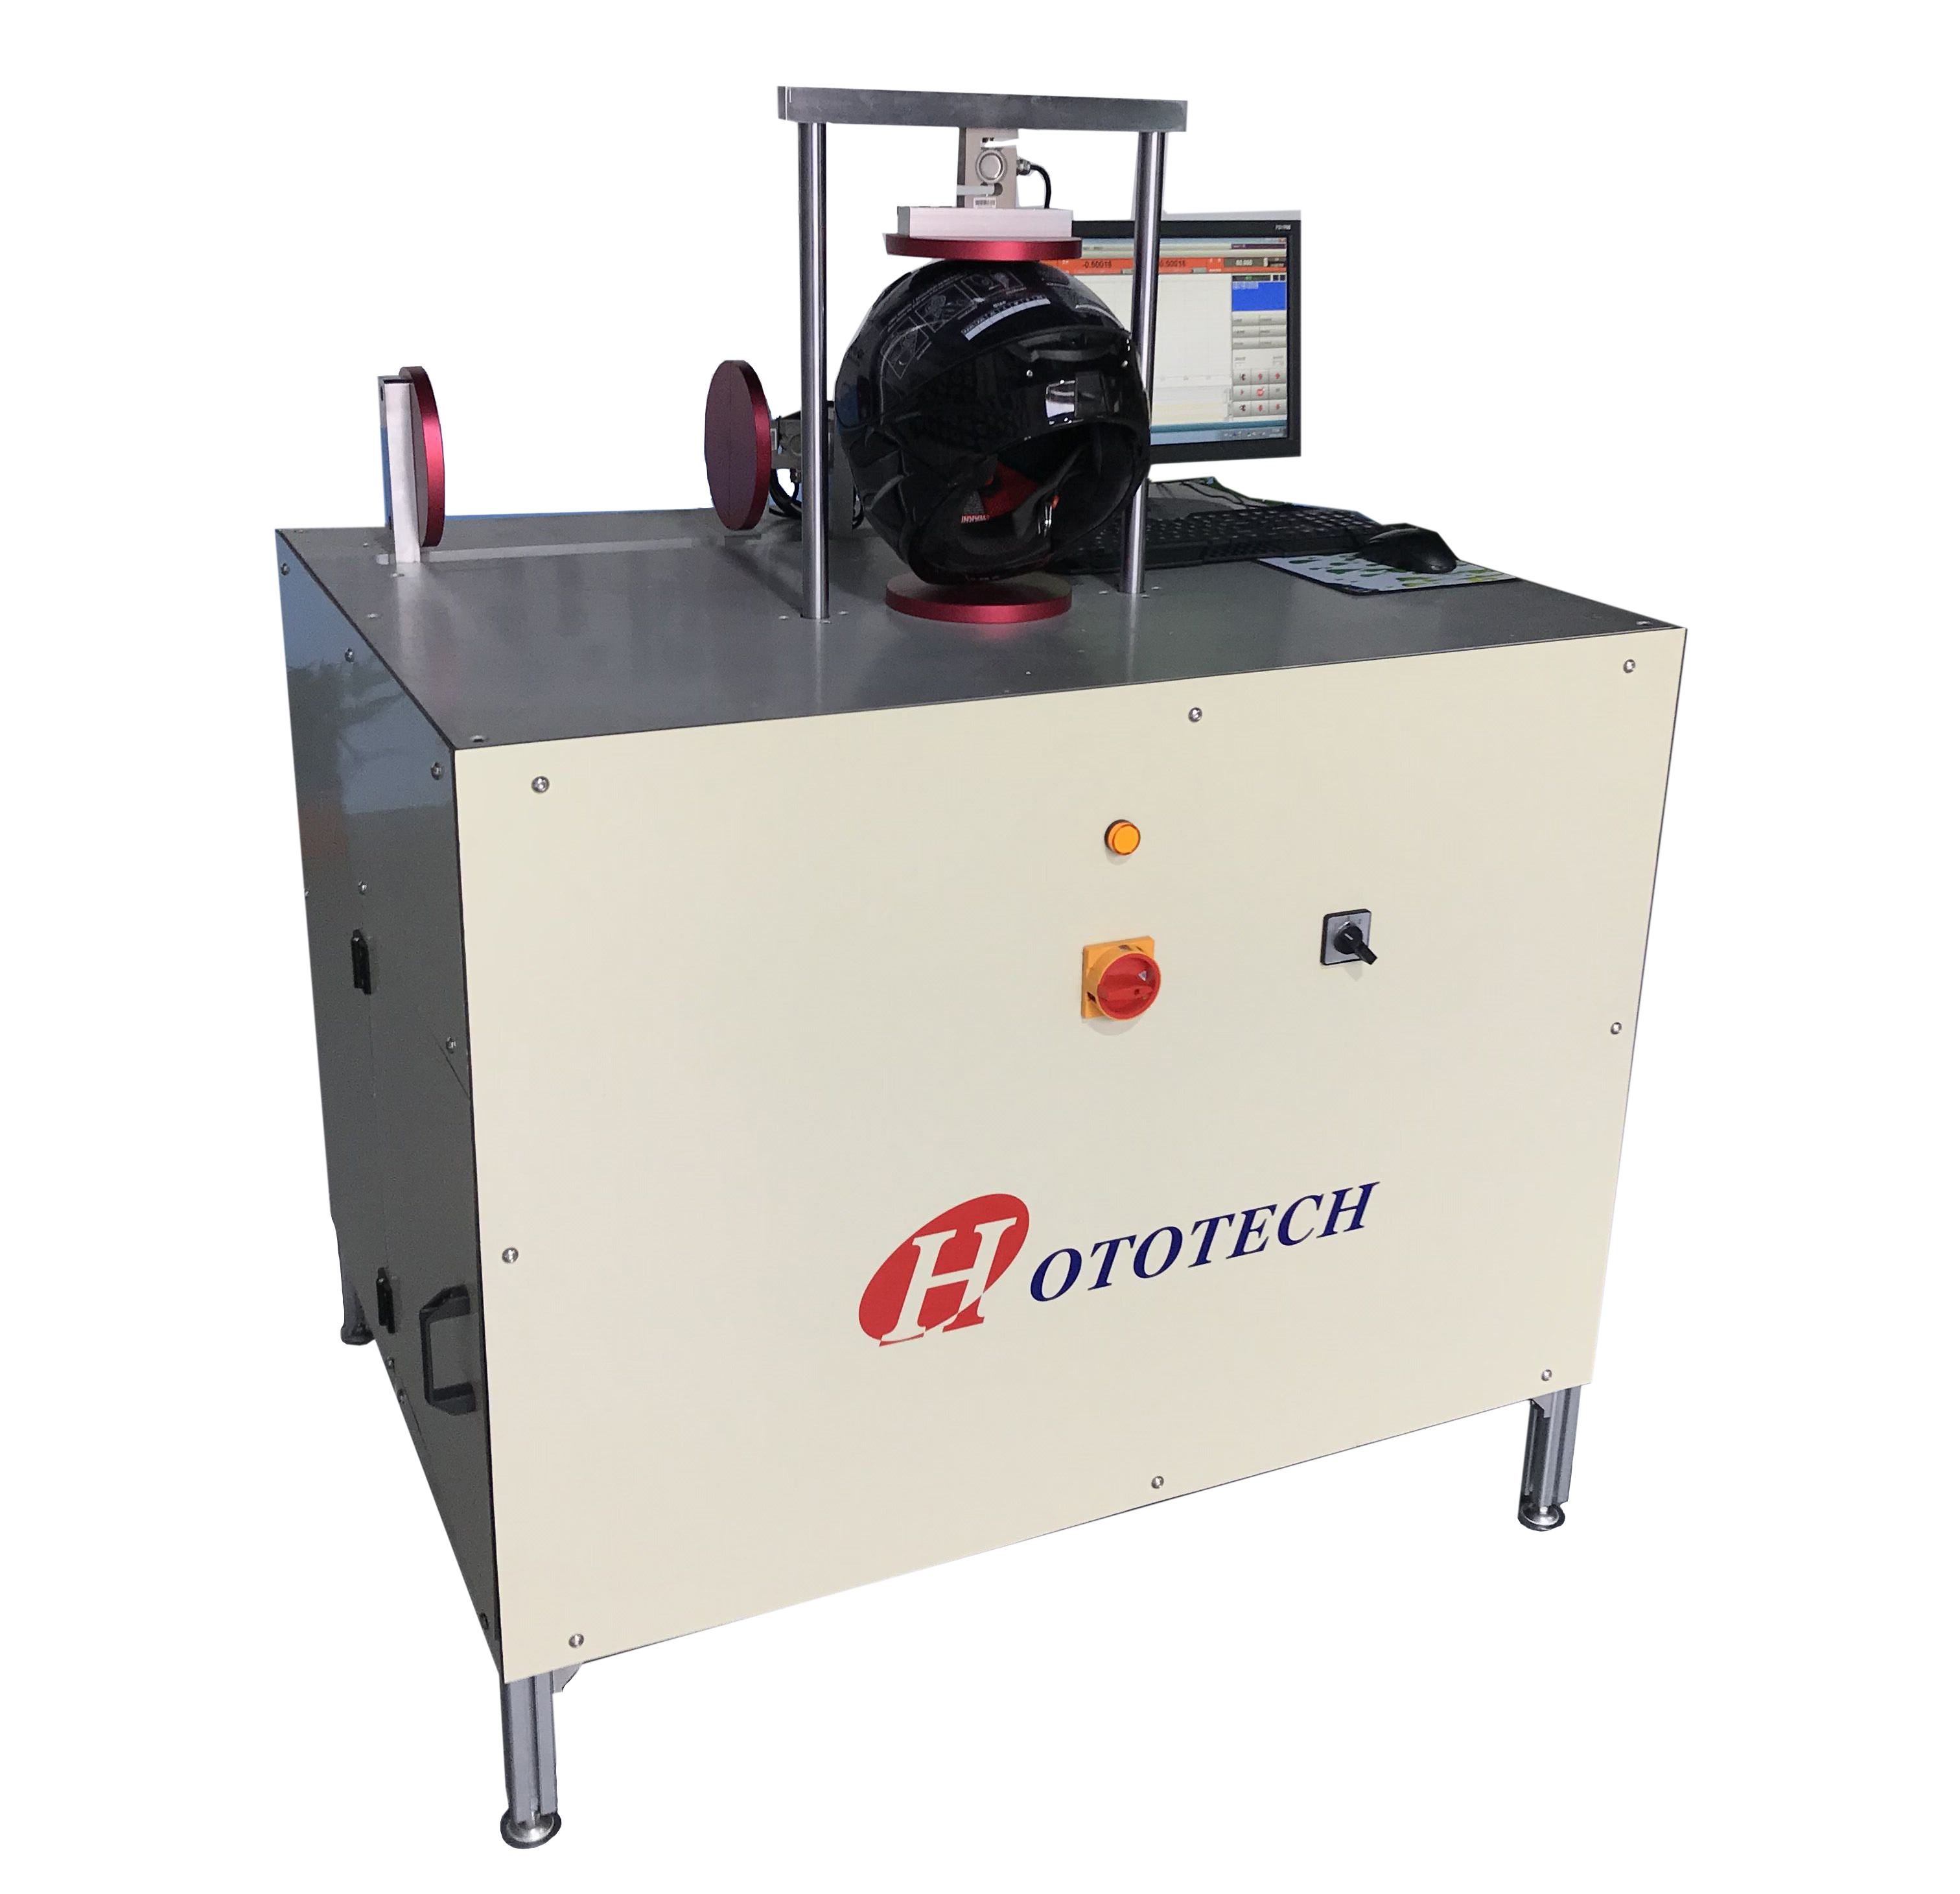 ECE R22.05 Helmet Rigidity Test Machine / helmet testing machine / testing equipment